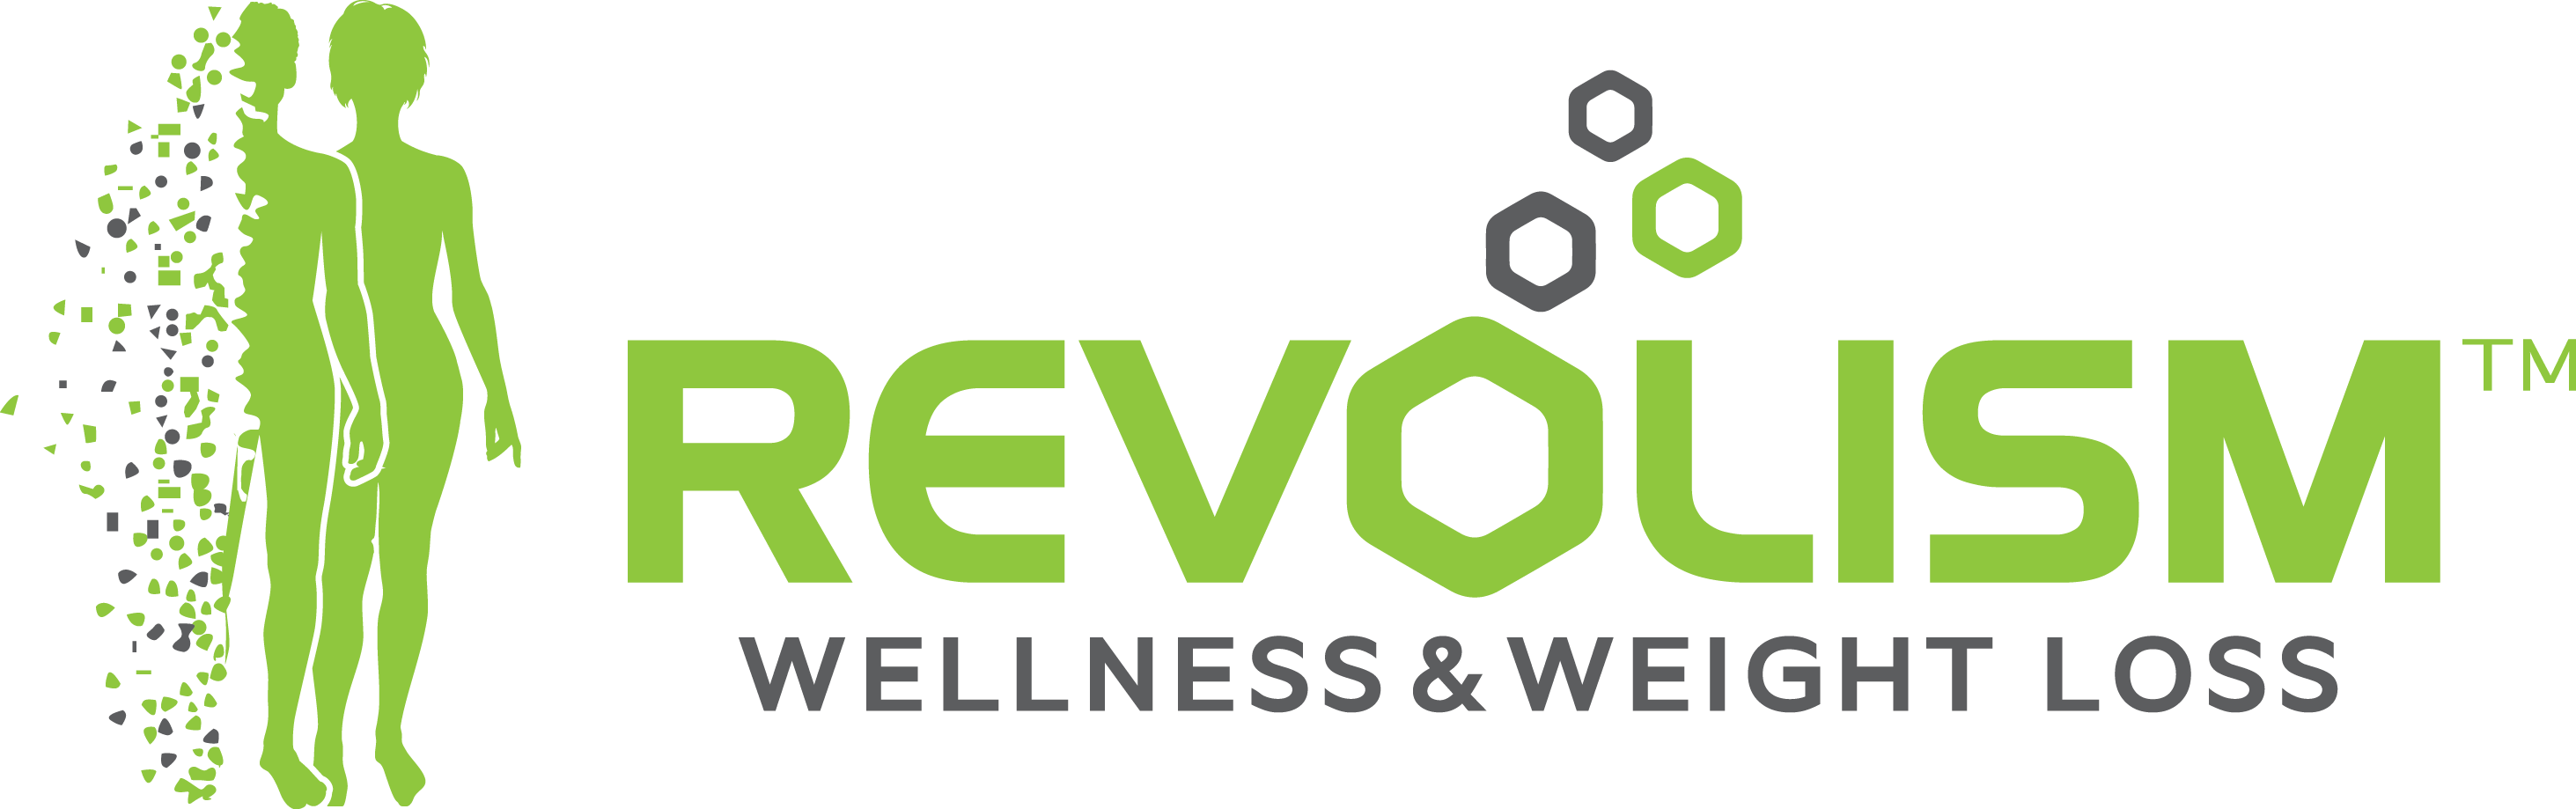 REVOLISM-Wellness & Weight Loss